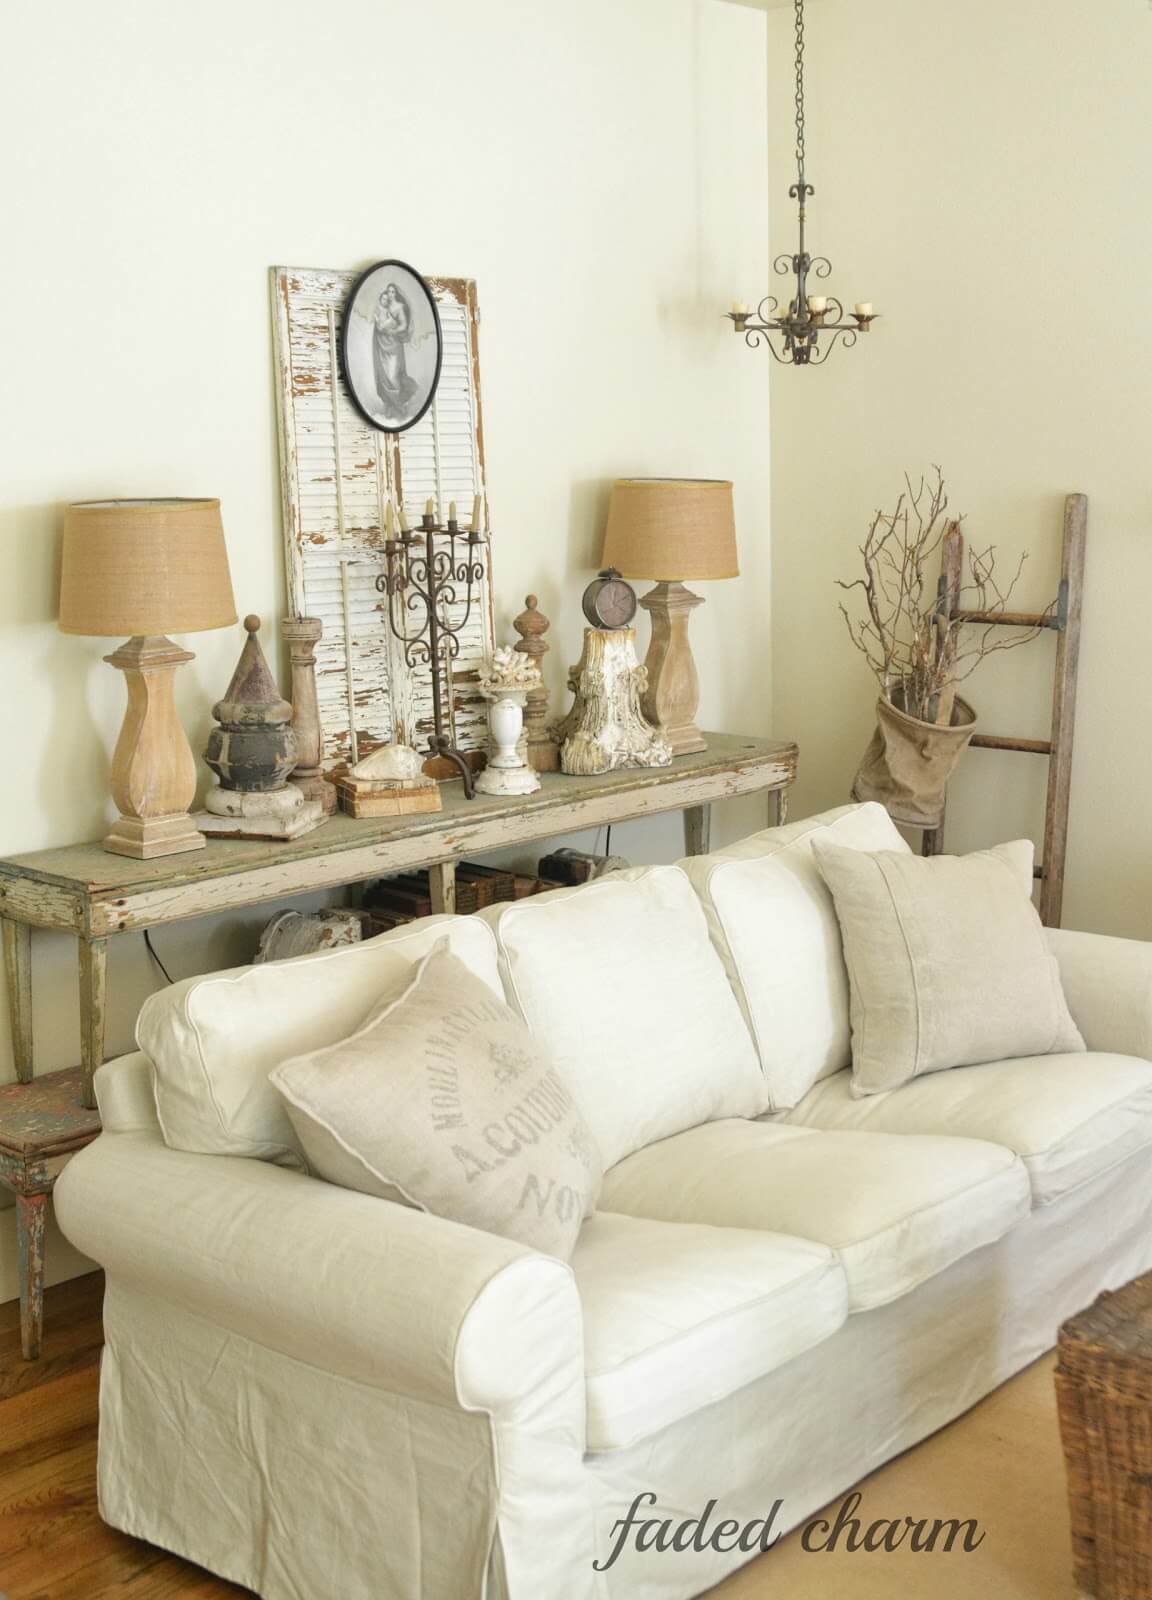 21 Best Rustic Living Room Furniture Ideas And Designs For 2021